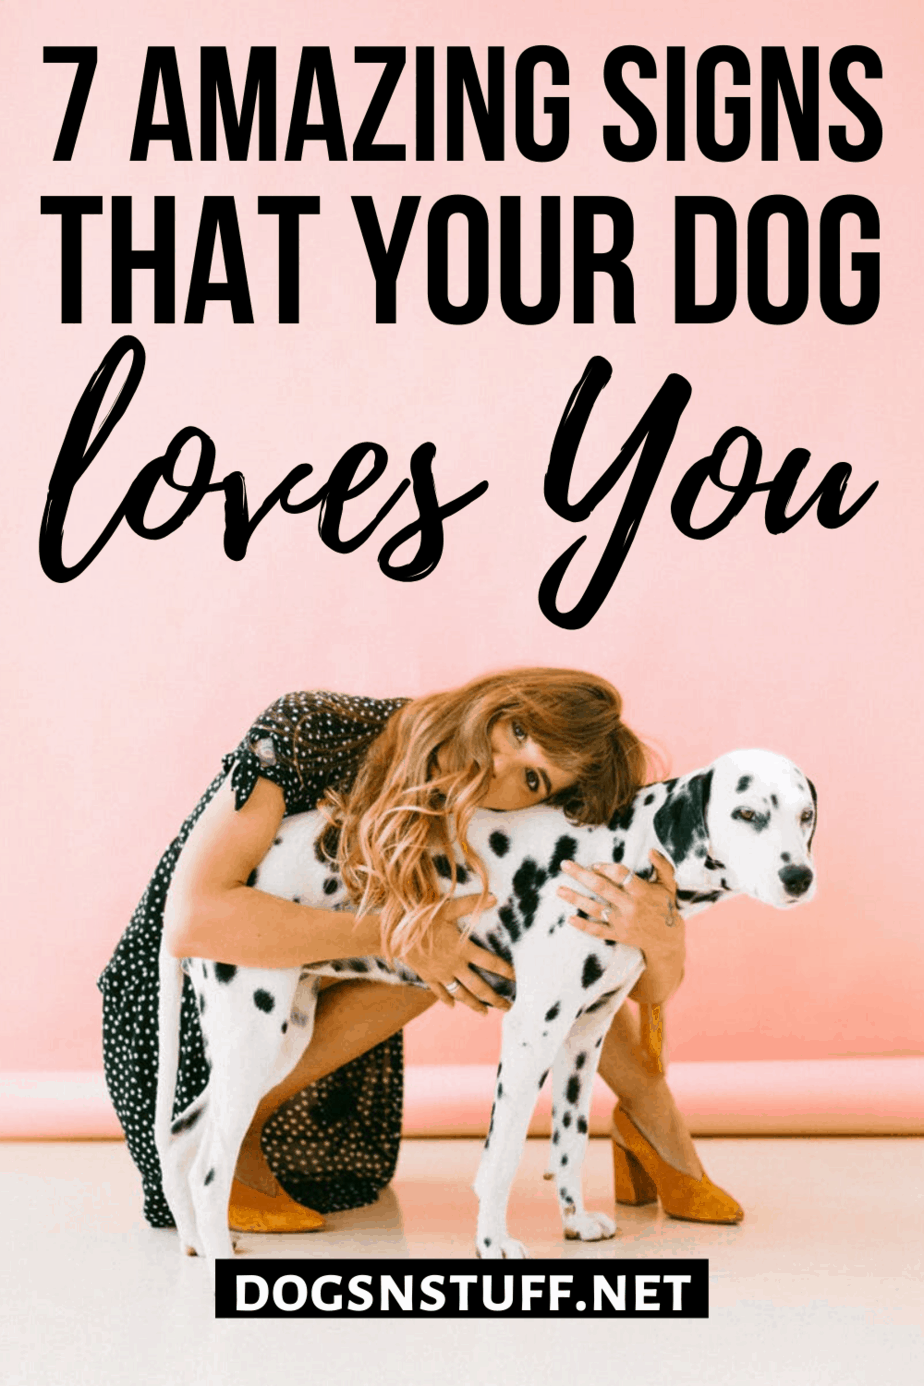 Signs that your dog loves you